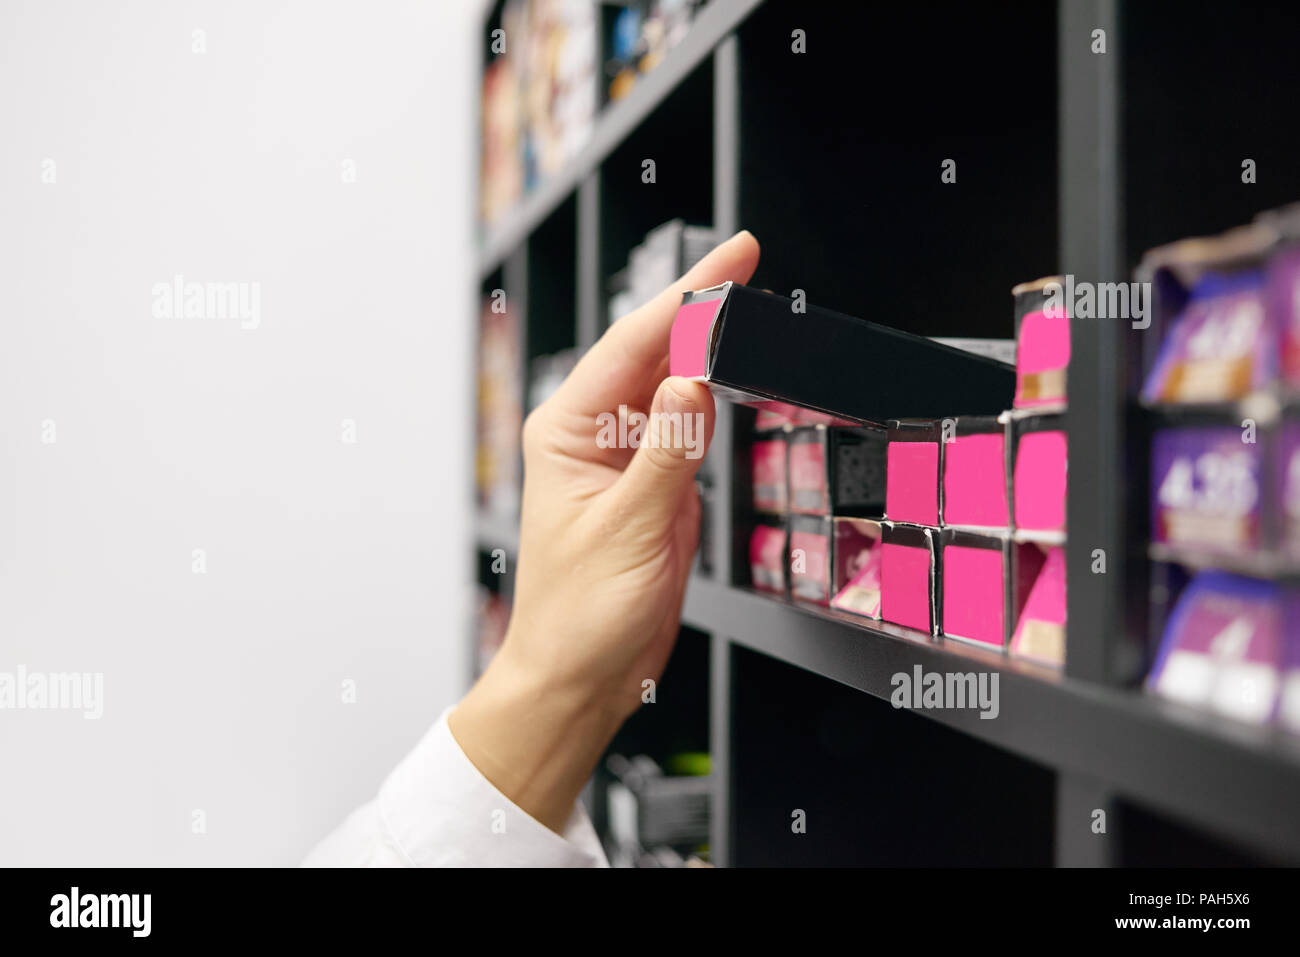 Client choosing hair care products in beaty salon. Little black boxes, packages with bright saturated pink etiquettes laying on wooden shelves on white background. Stock Photo